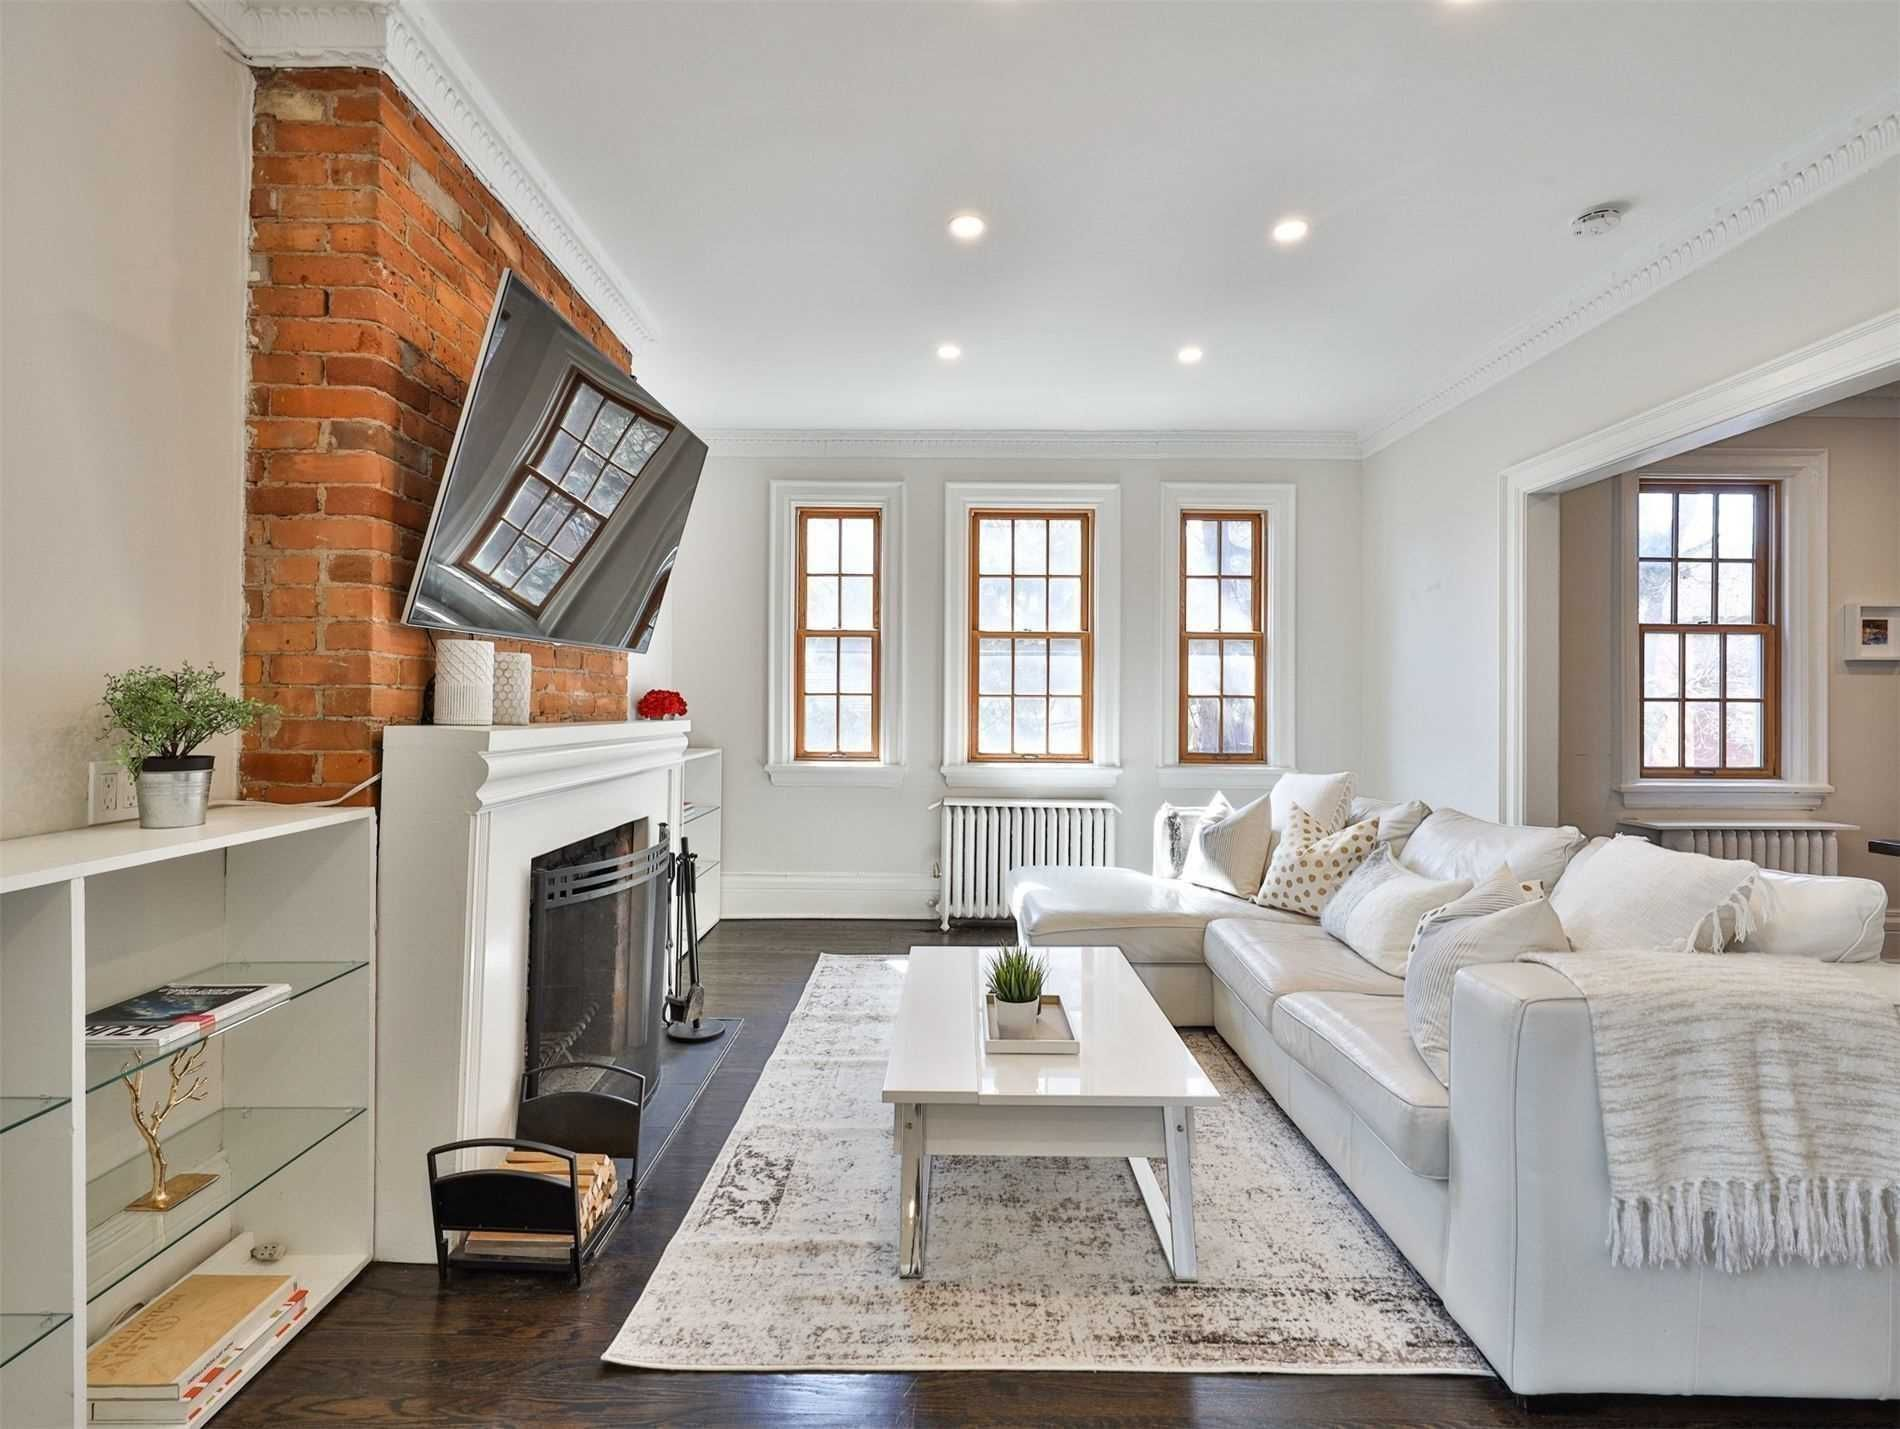 291 Ontario St, unit 6 for sale in Toronto - image #1